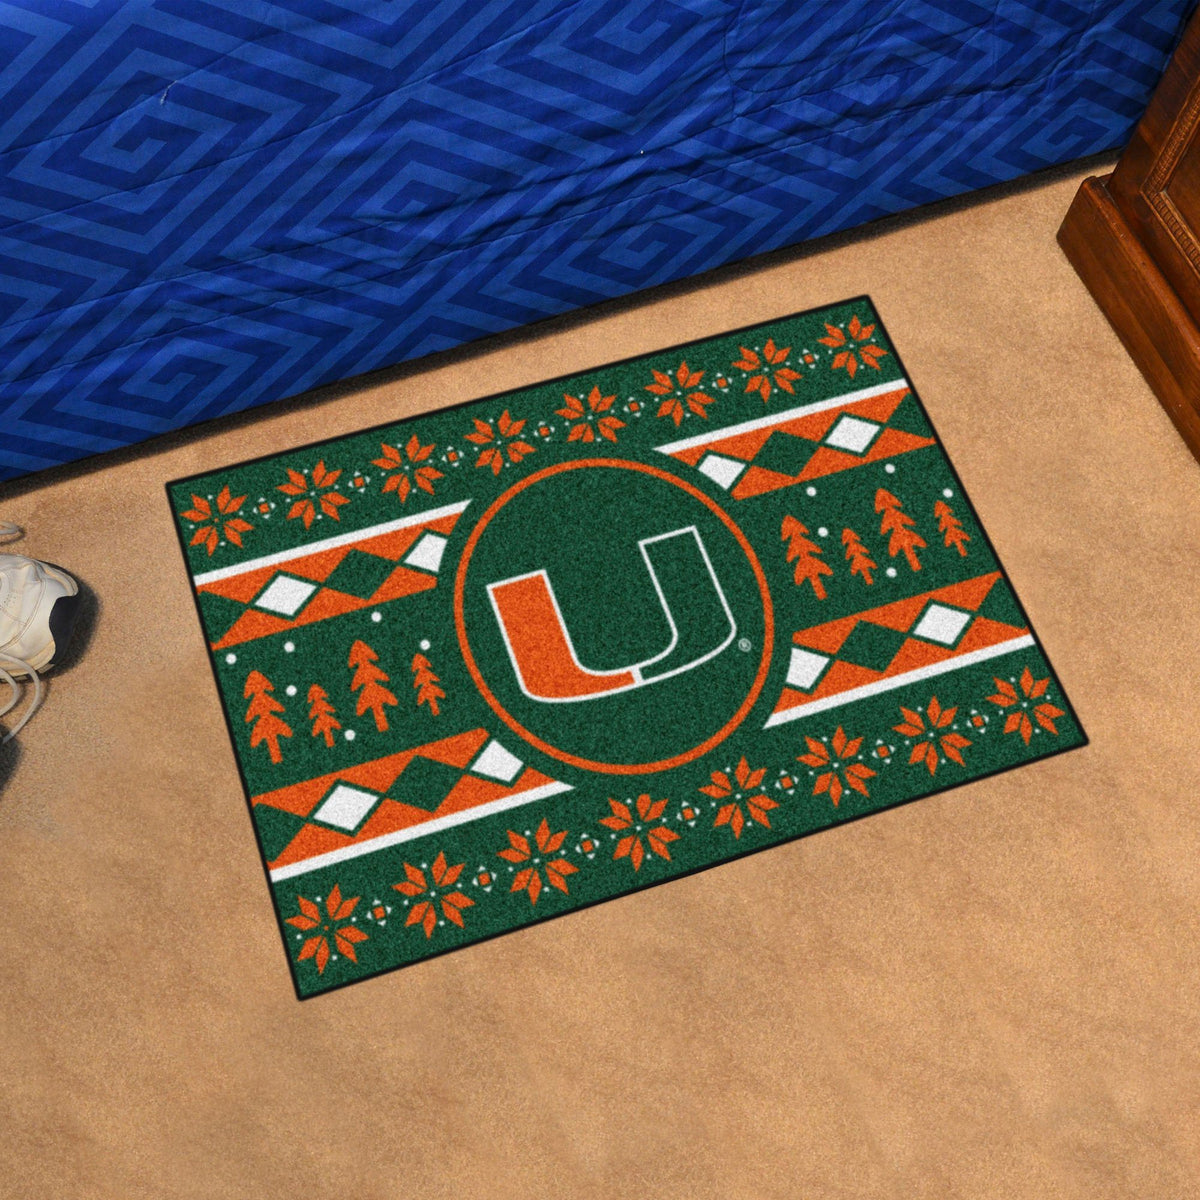 Collegiate - Holiday Sweater Starter Mat Collegiate Mats, Rectangular Mats, Holiday Sweater Starter Mat, Collegiate, Home Fan Mats Miami